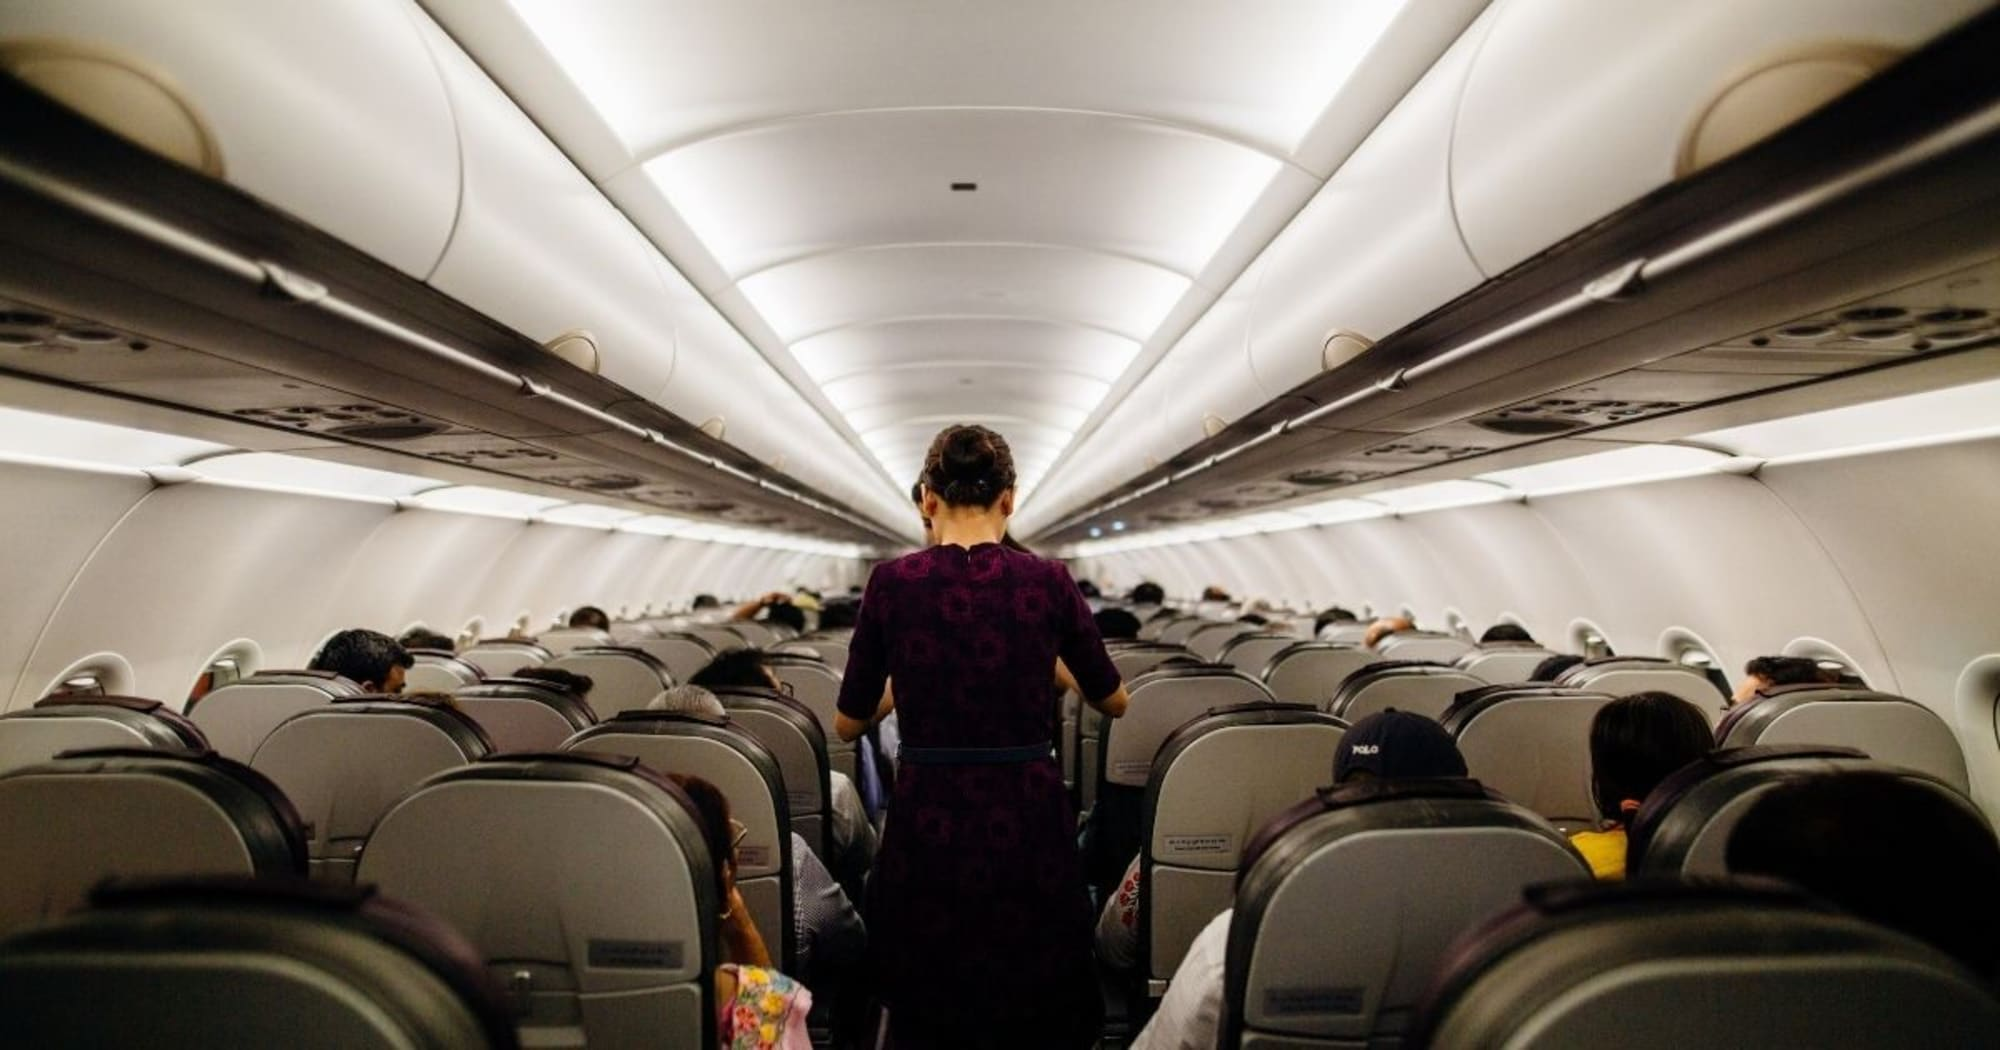 Local Airlines gives out promotional sales to encourage travel